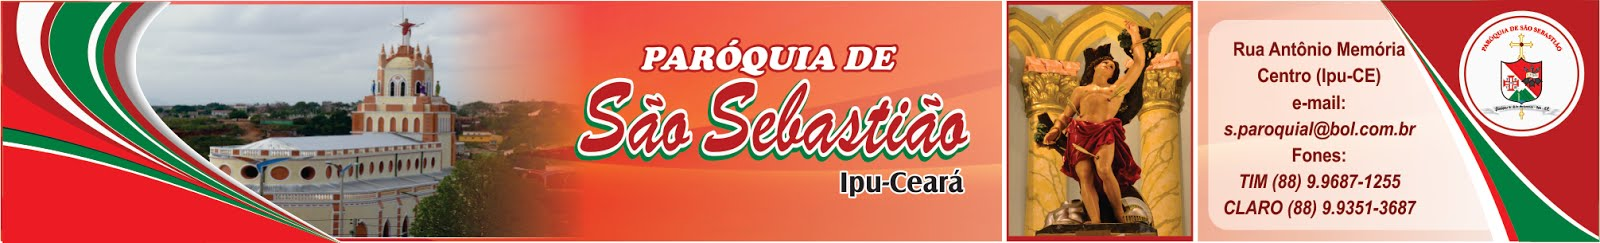 Paróquia São Sebastião de Ipu